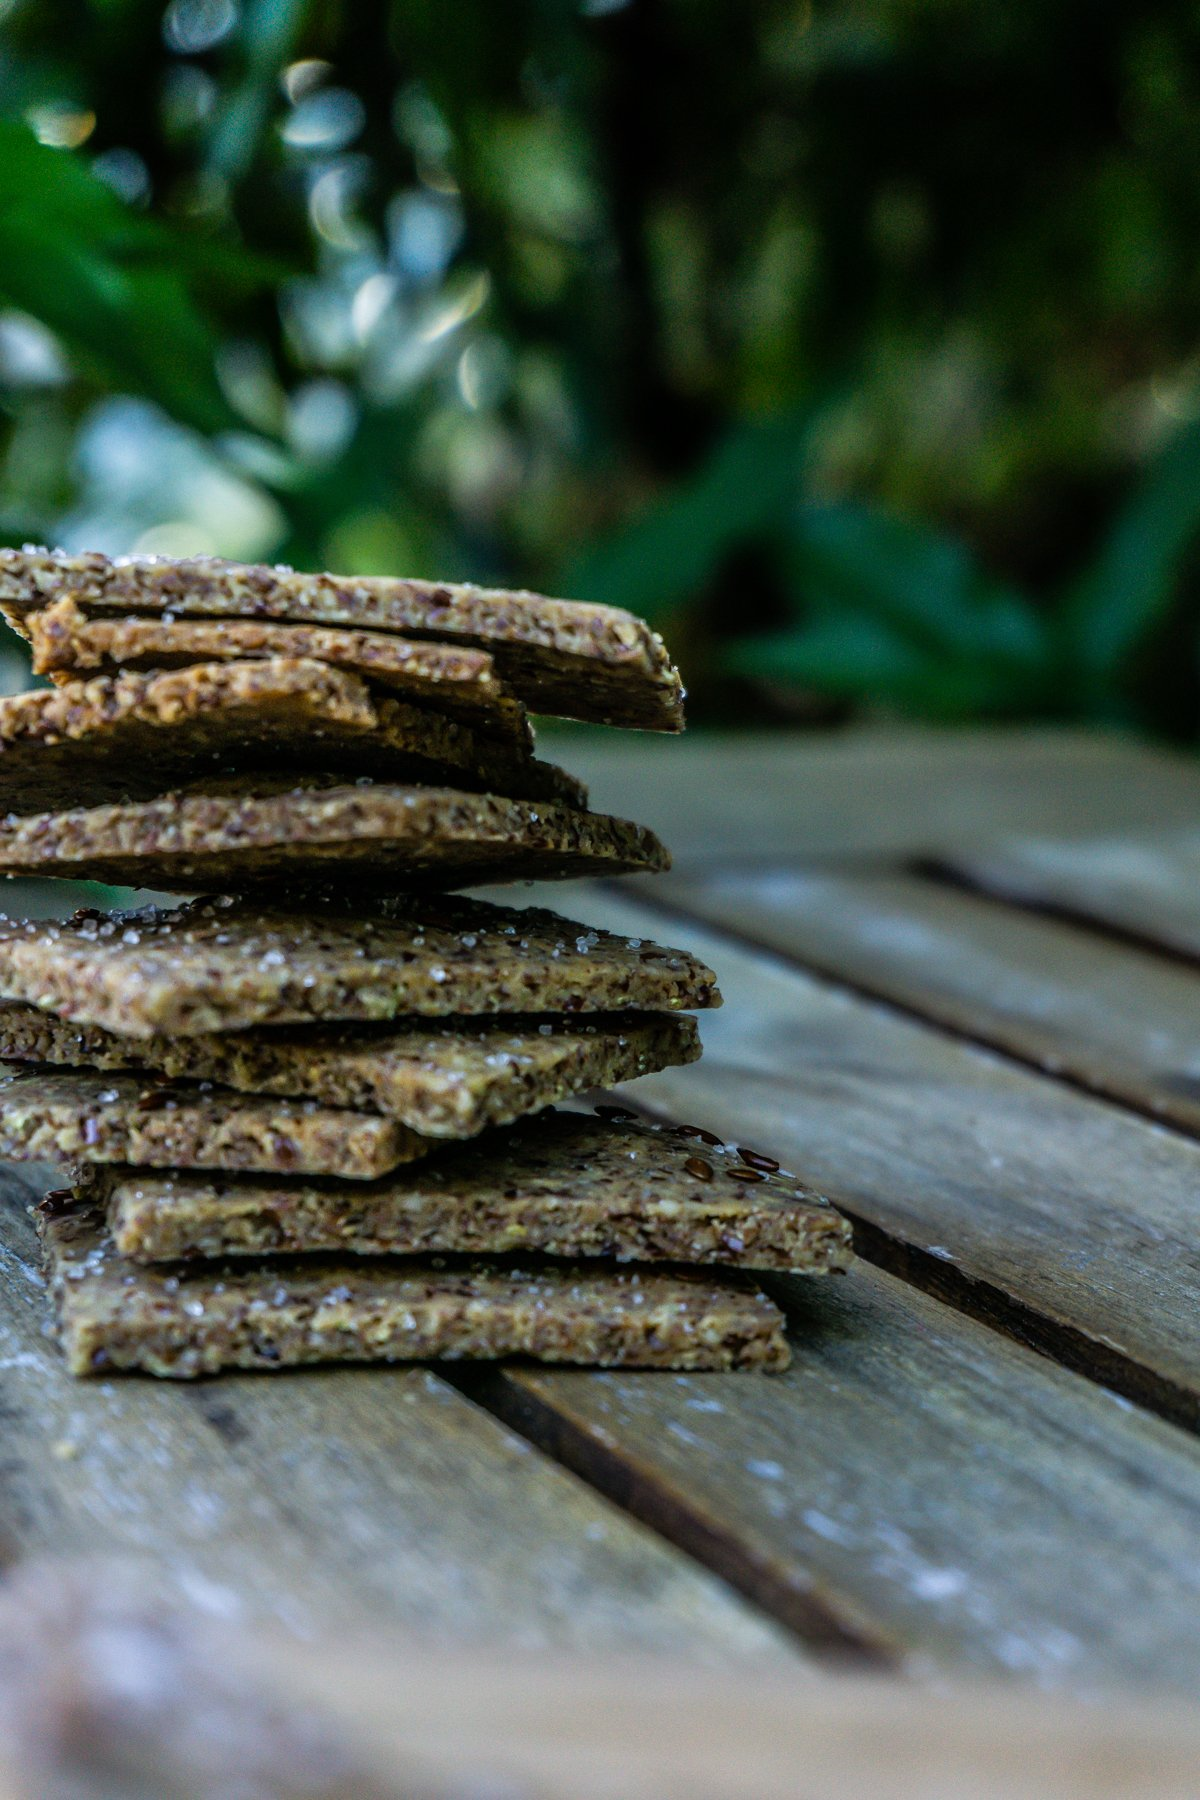 Stacked Easy Peasy Flax Crackers on a wooden table with greenery in the background